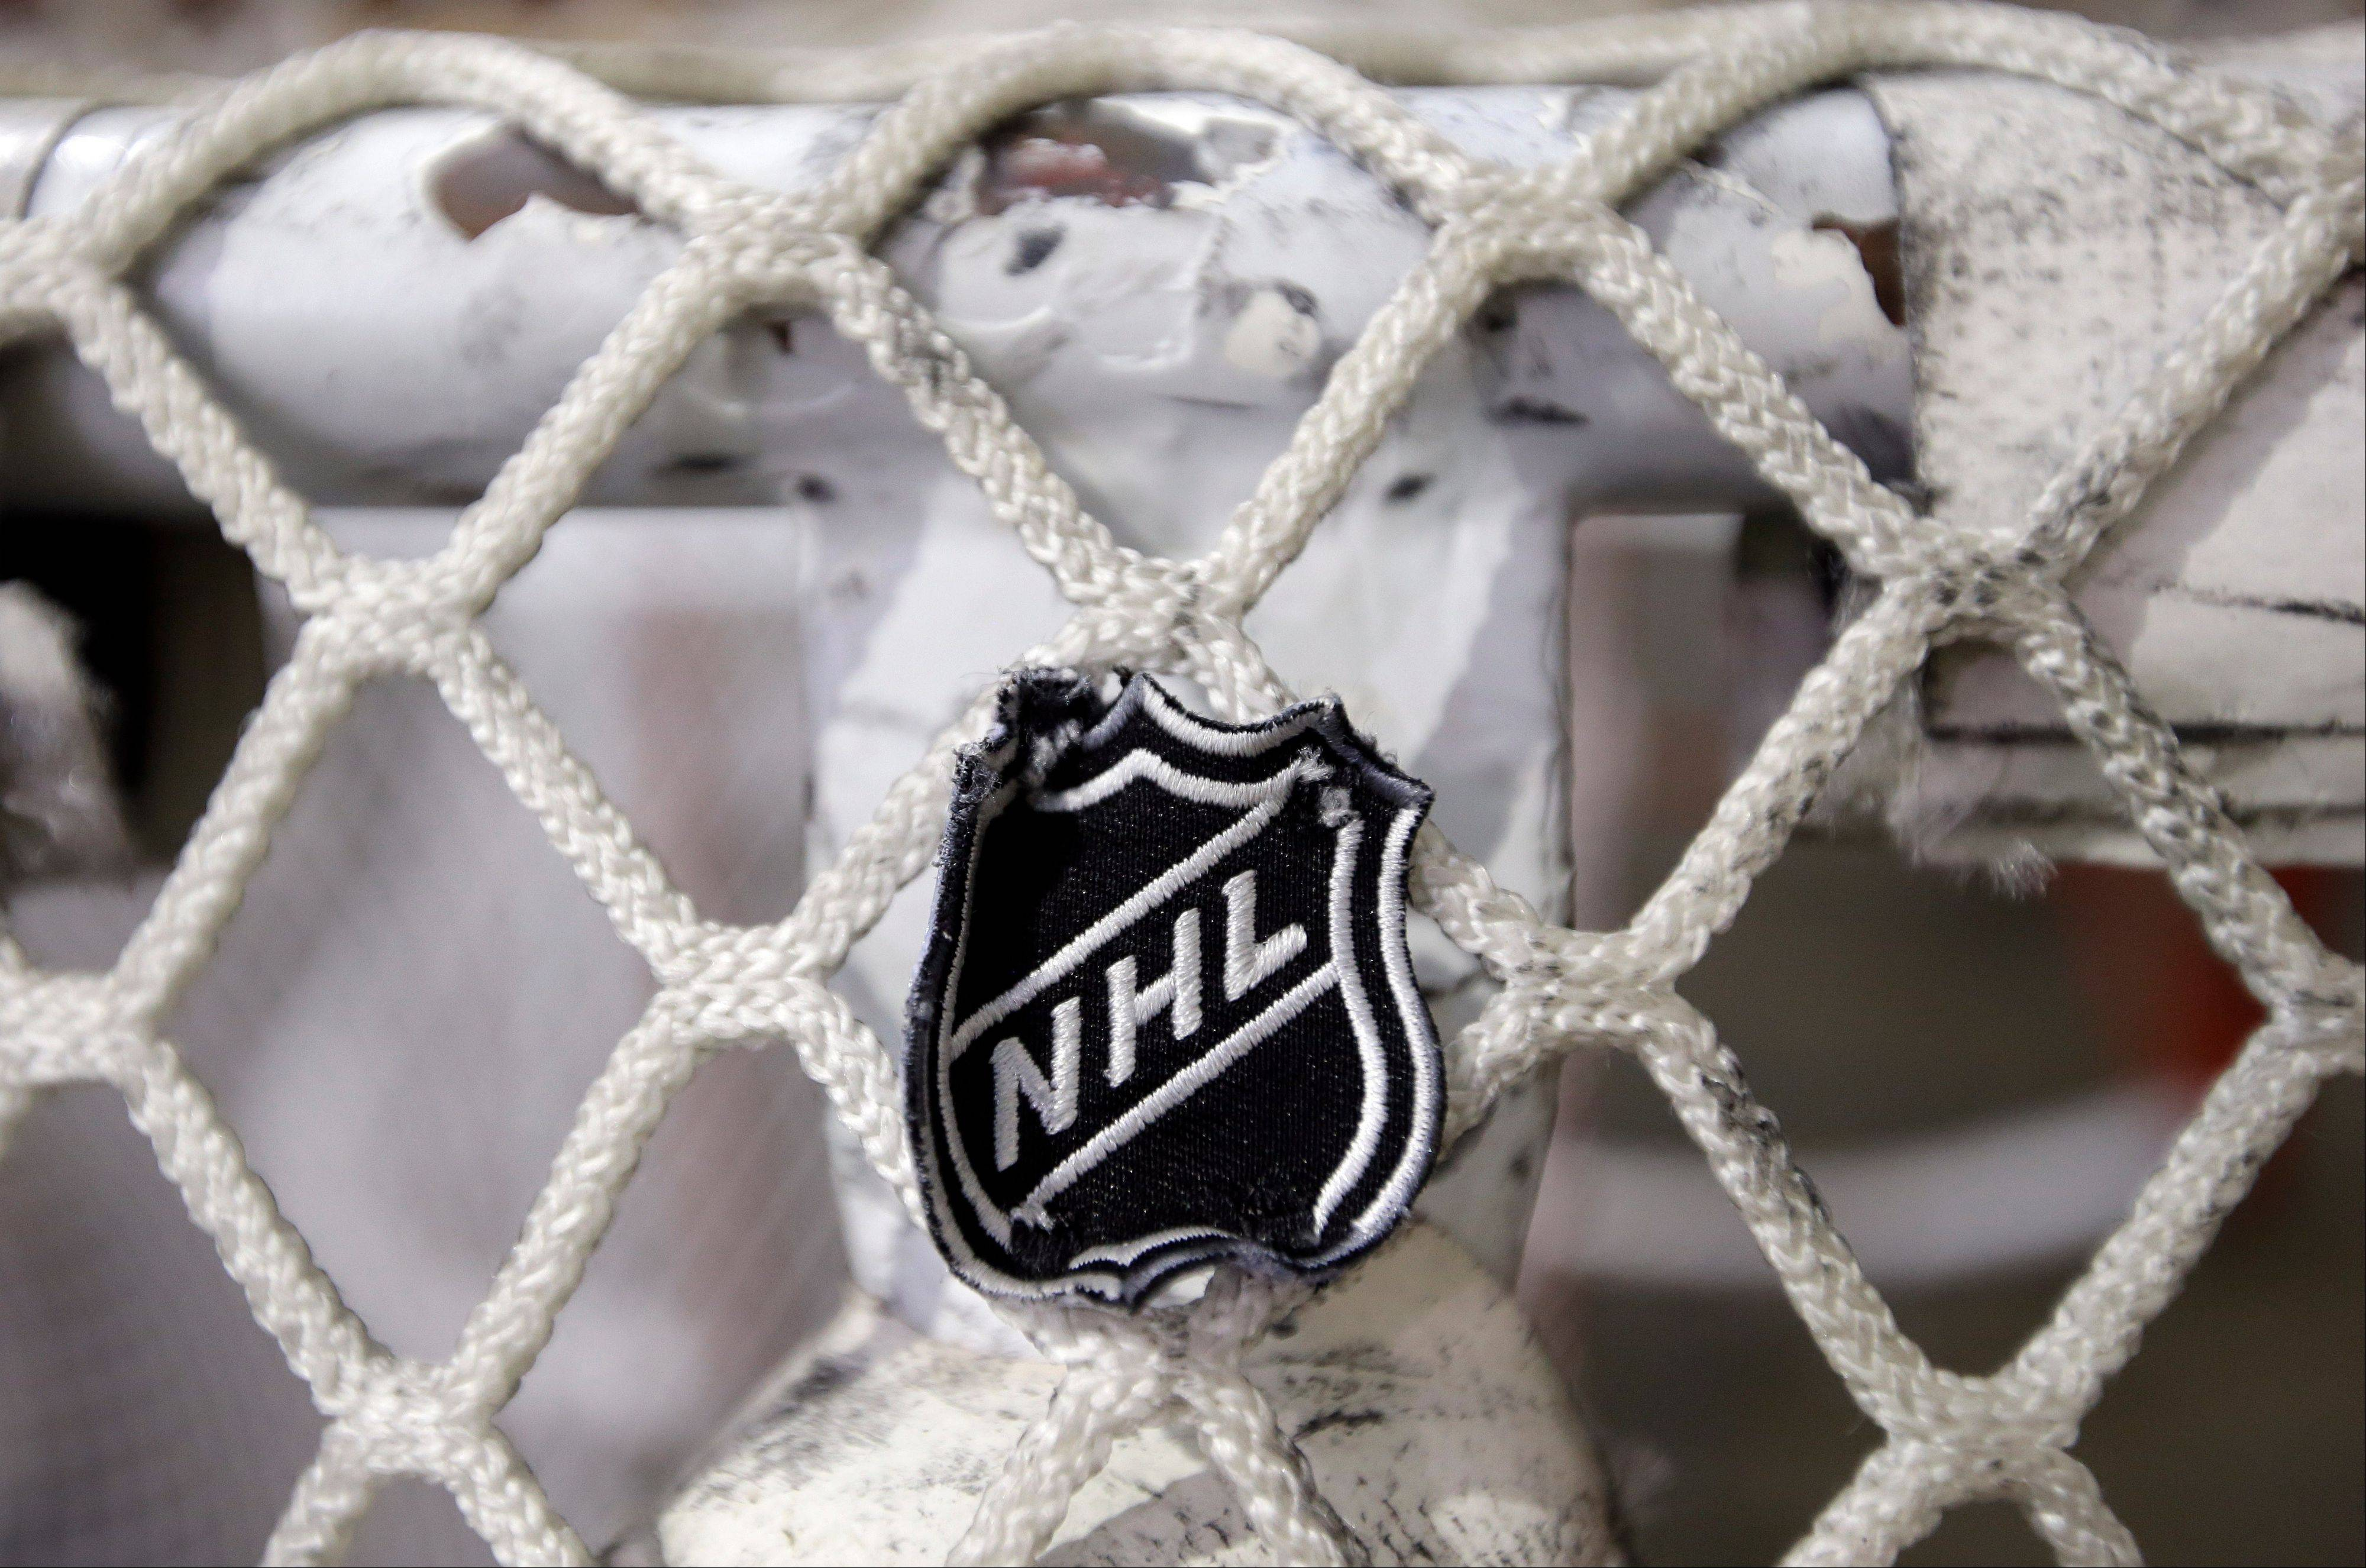 The NHL eliminated 16 more days from the regular-season schedule Monday, and if a deal with the players' association isn't reached soon the whole season could be lost. The league wiped out all games through Dec. 30 in its latest round of cancellations. Negotiations between the league and the players' association broke off last week, but NHL deputy commissioner Bill Daly said Sunday the sides are trying to restart talks this week.